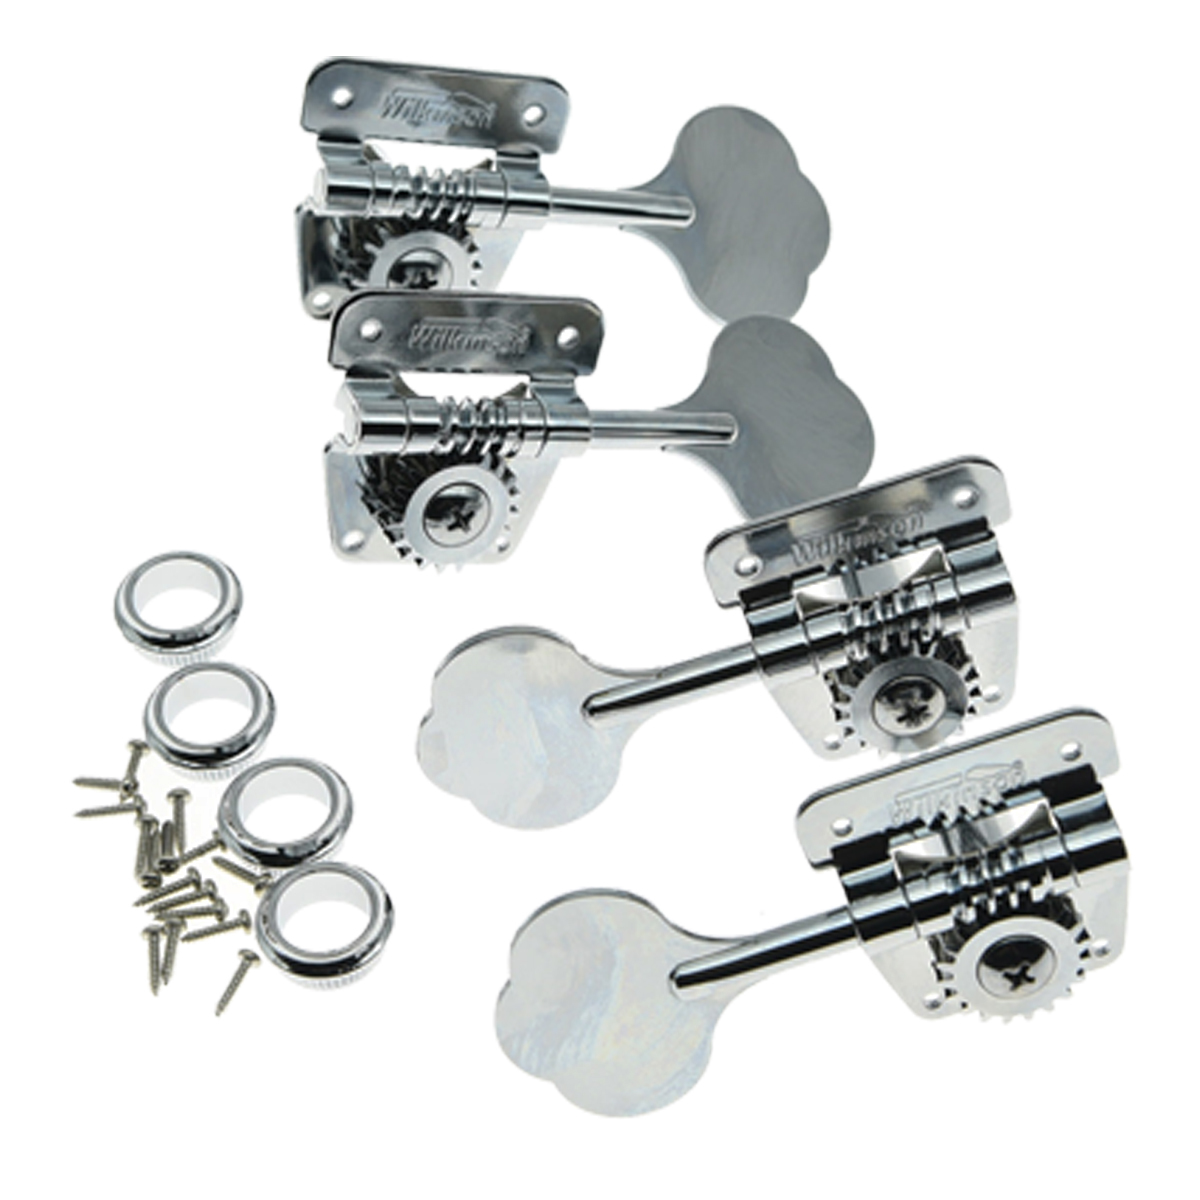 Wilkinson Black/Chrome Bass Tuners Tuning Pegs for 70s Vintage J Bass Precision P Bass kaish black 6 inline 2 pin locking tuning keys pegs tuners fits usa strat tele